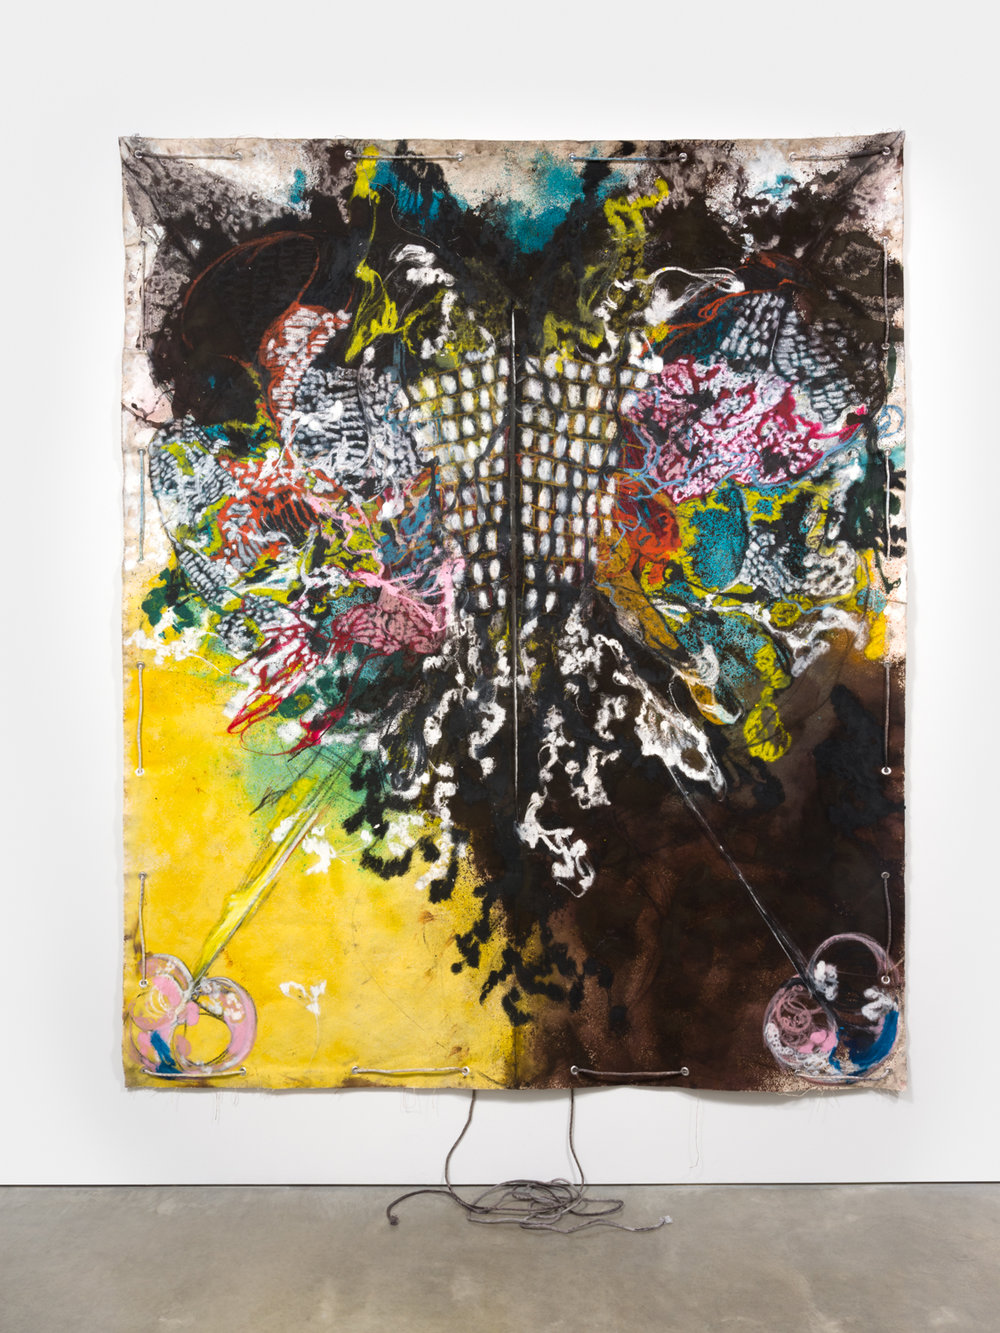 Naotaka Hiro Untitled (Morph), 2018 Canvas, fabric dye, oil pastel, rope and grommets 108h x 84w in NaoH034